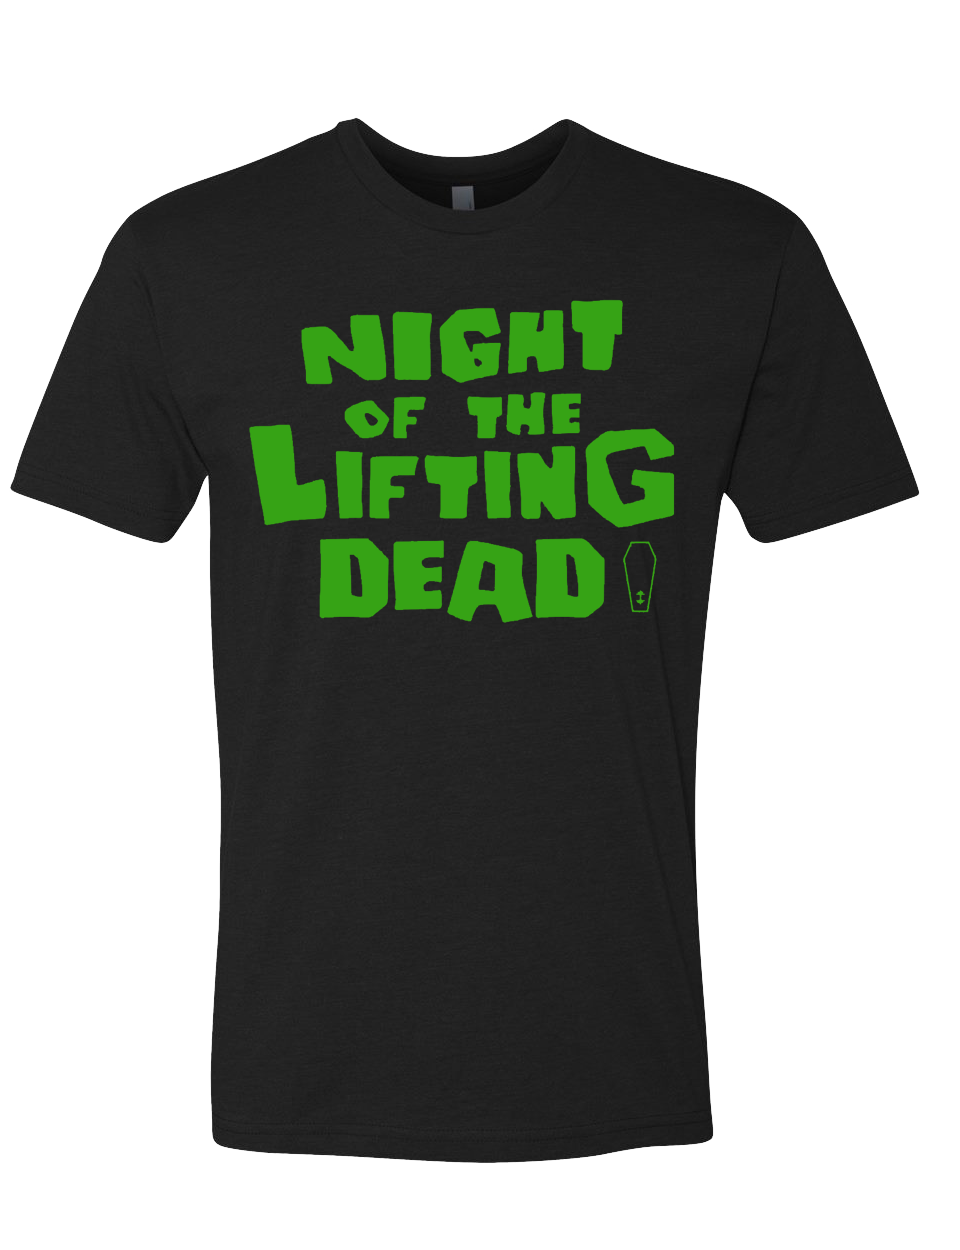 Night of the Lifting Dead Unisex Tee